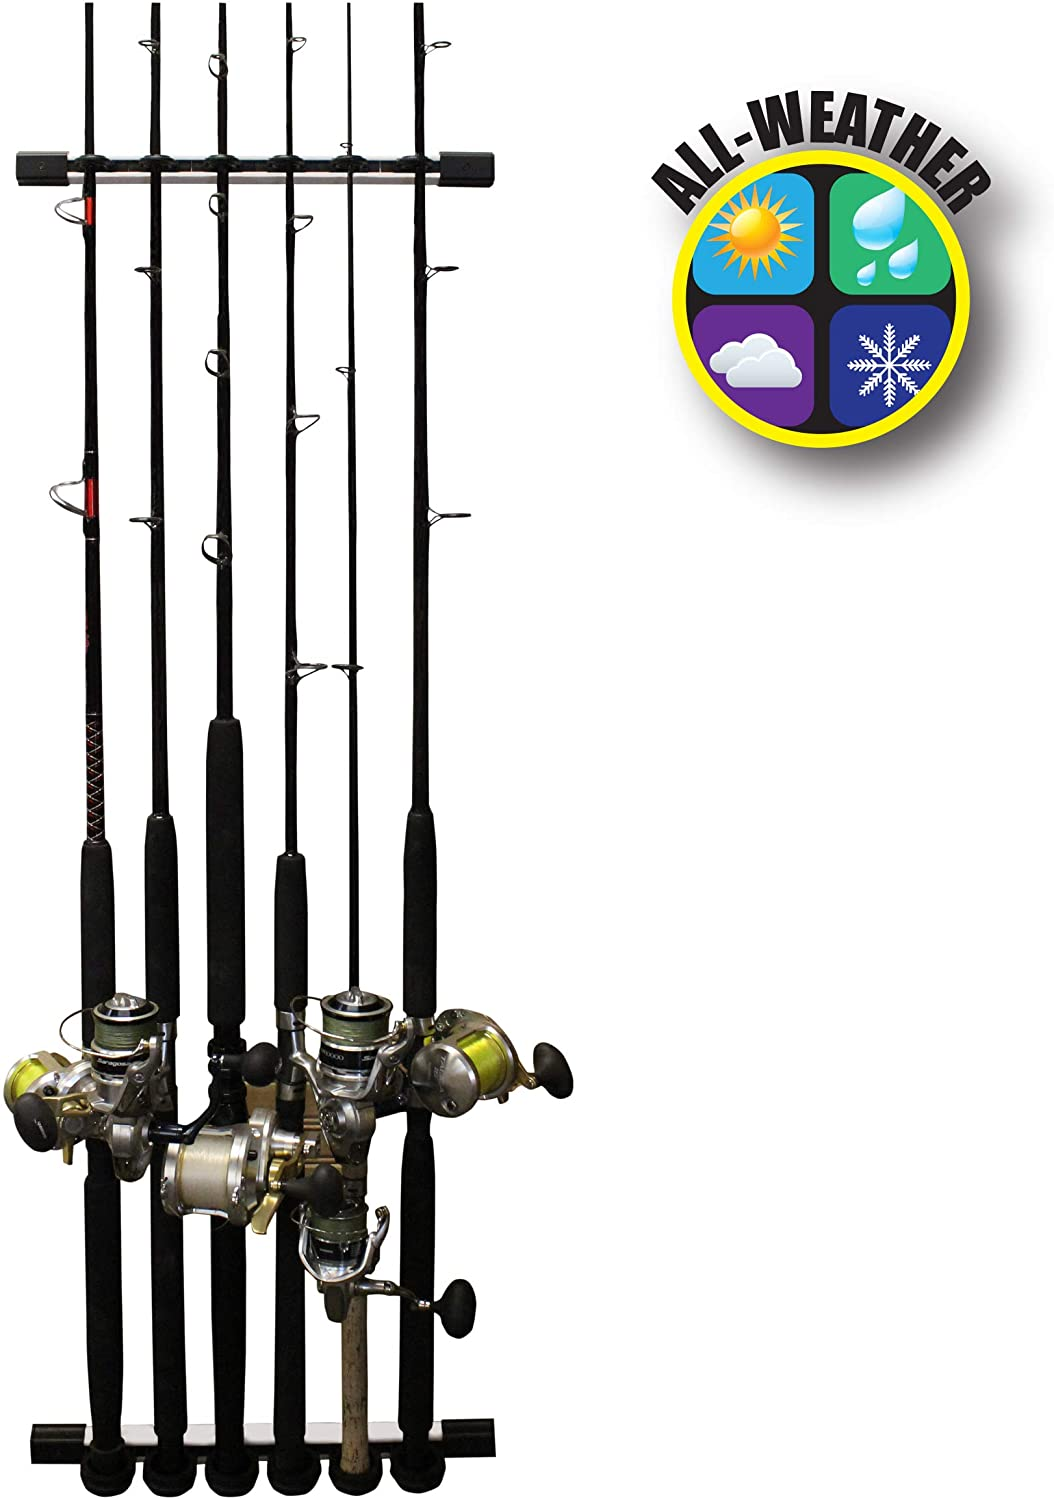 Rush Creek Creations 3 in 1 All Weather 6 Fishing Rod and Pole Storage Rack for Wall or Ceiling - Innovative Expansion Capability, One Size